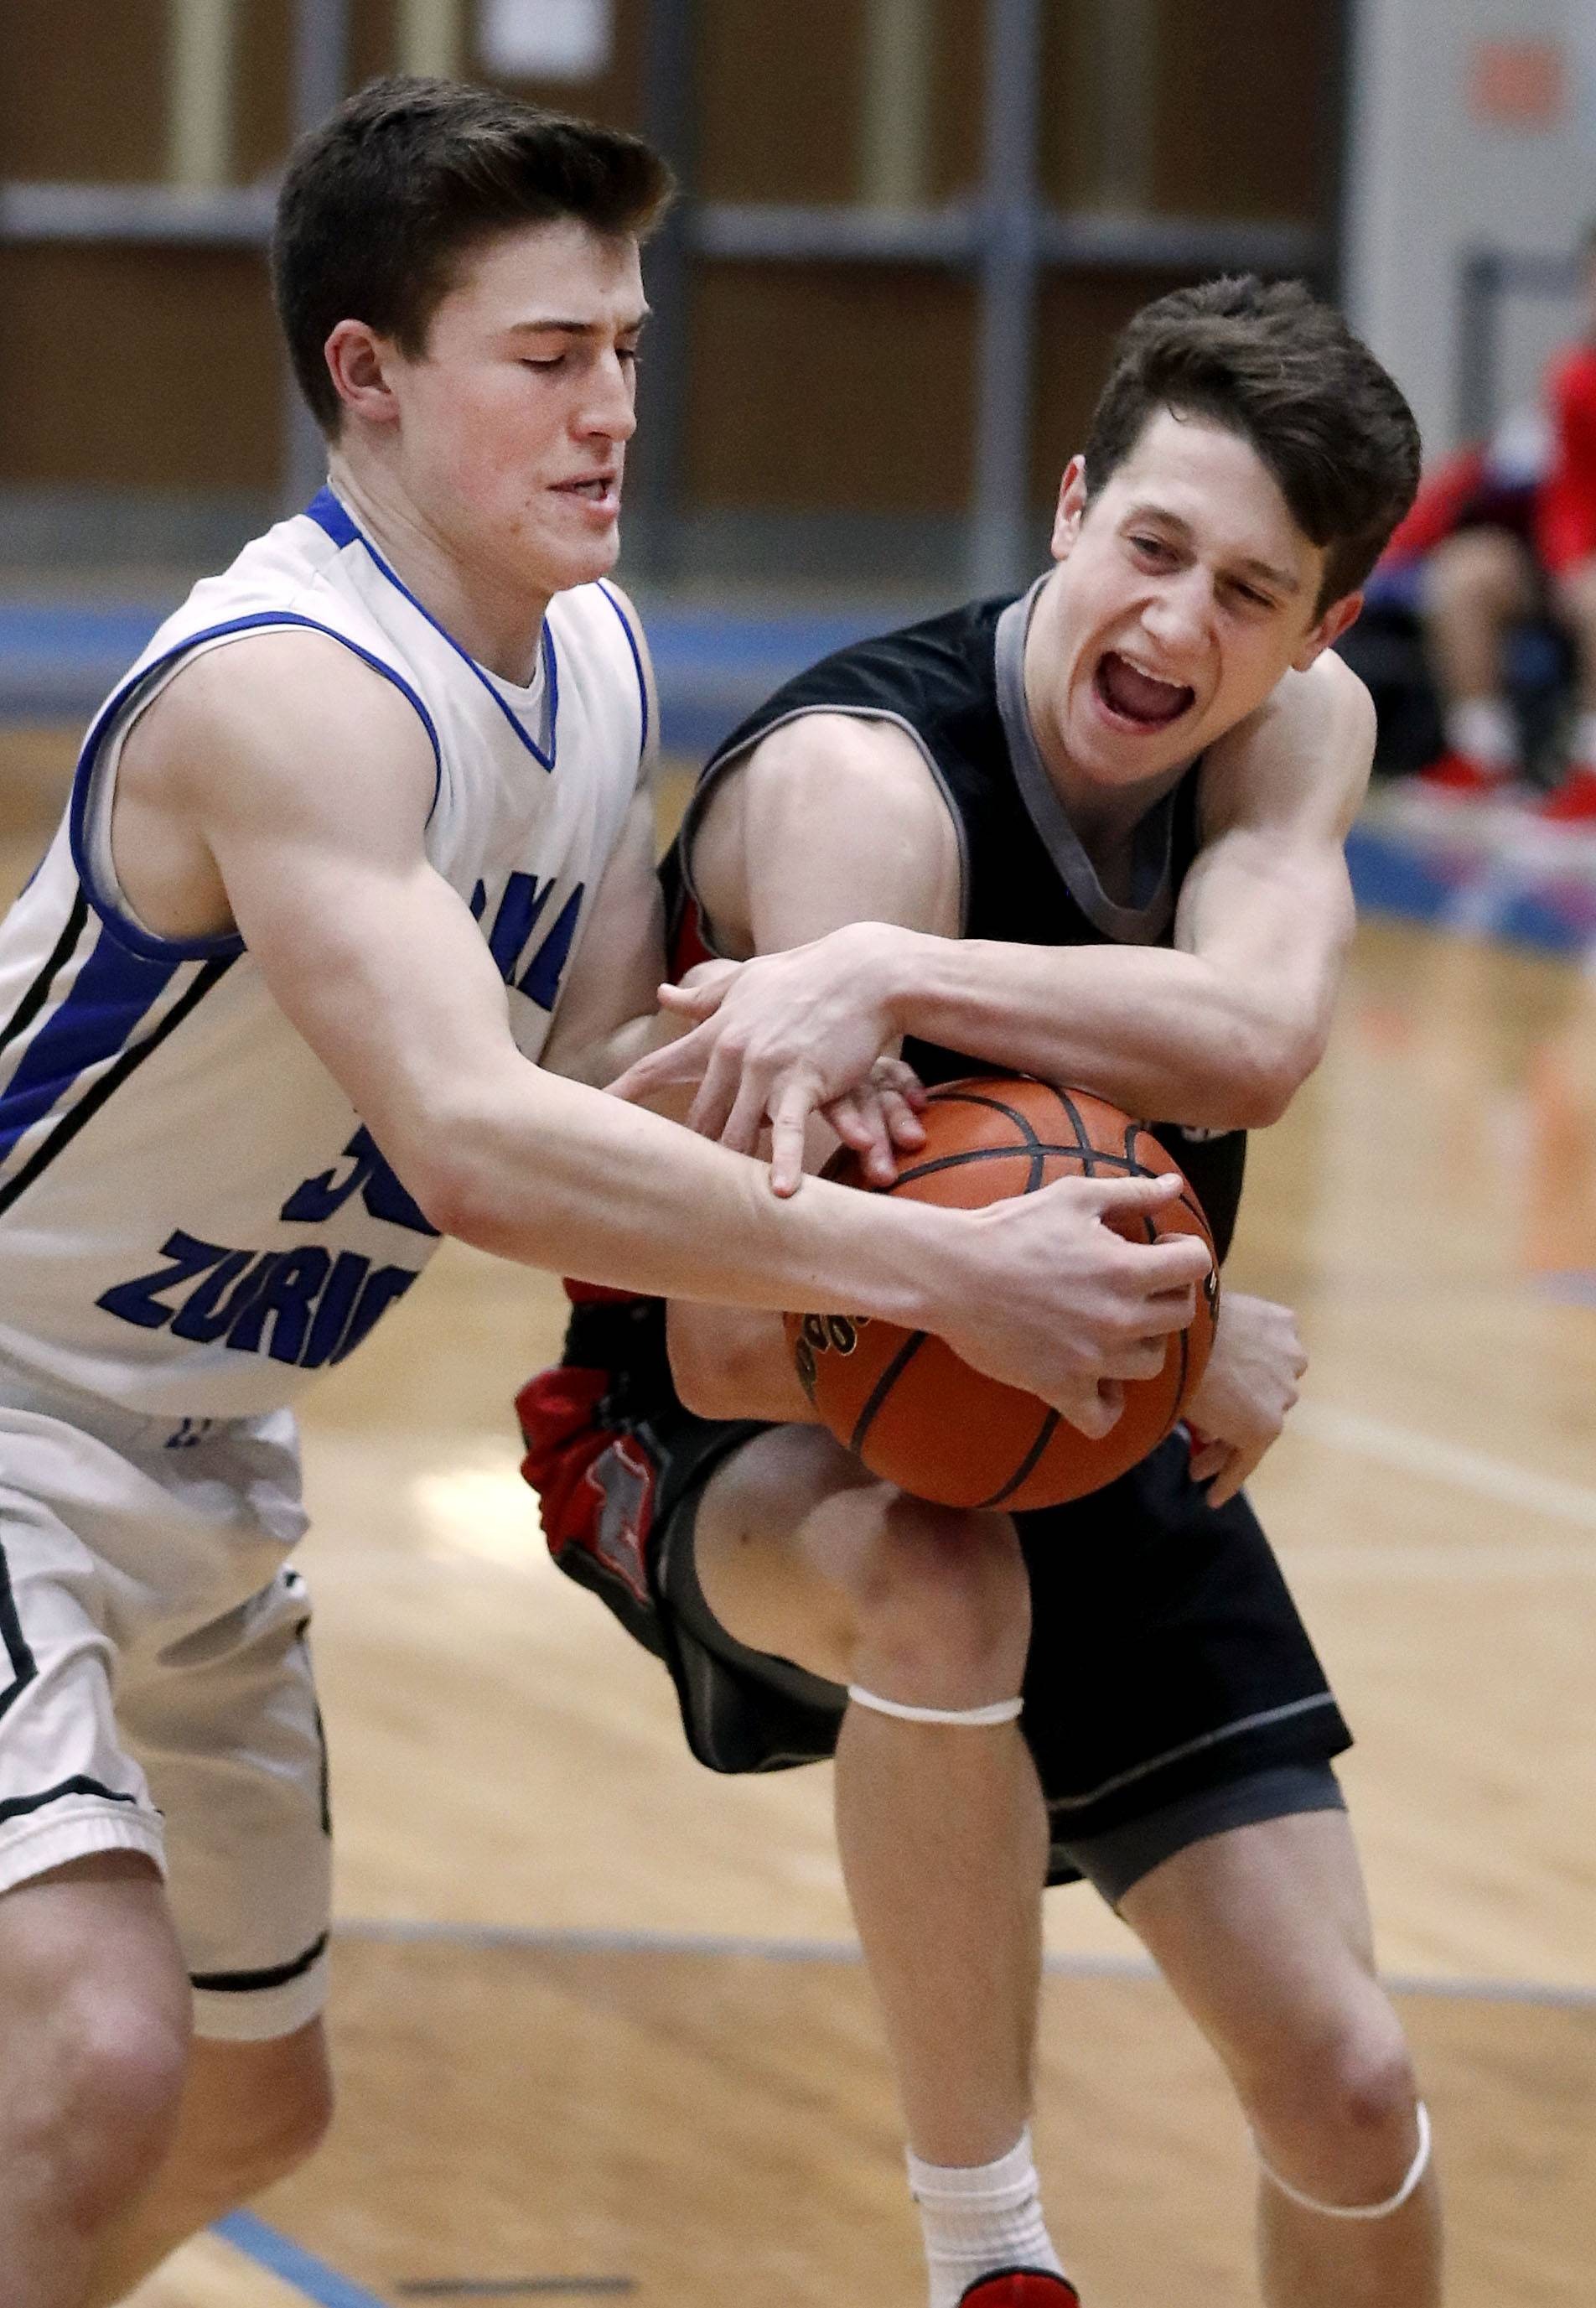 Mundelein's Conor Enright, right, drives on Lake Zurich's William Tucker during their game Tuesday night in Lake Zurich,